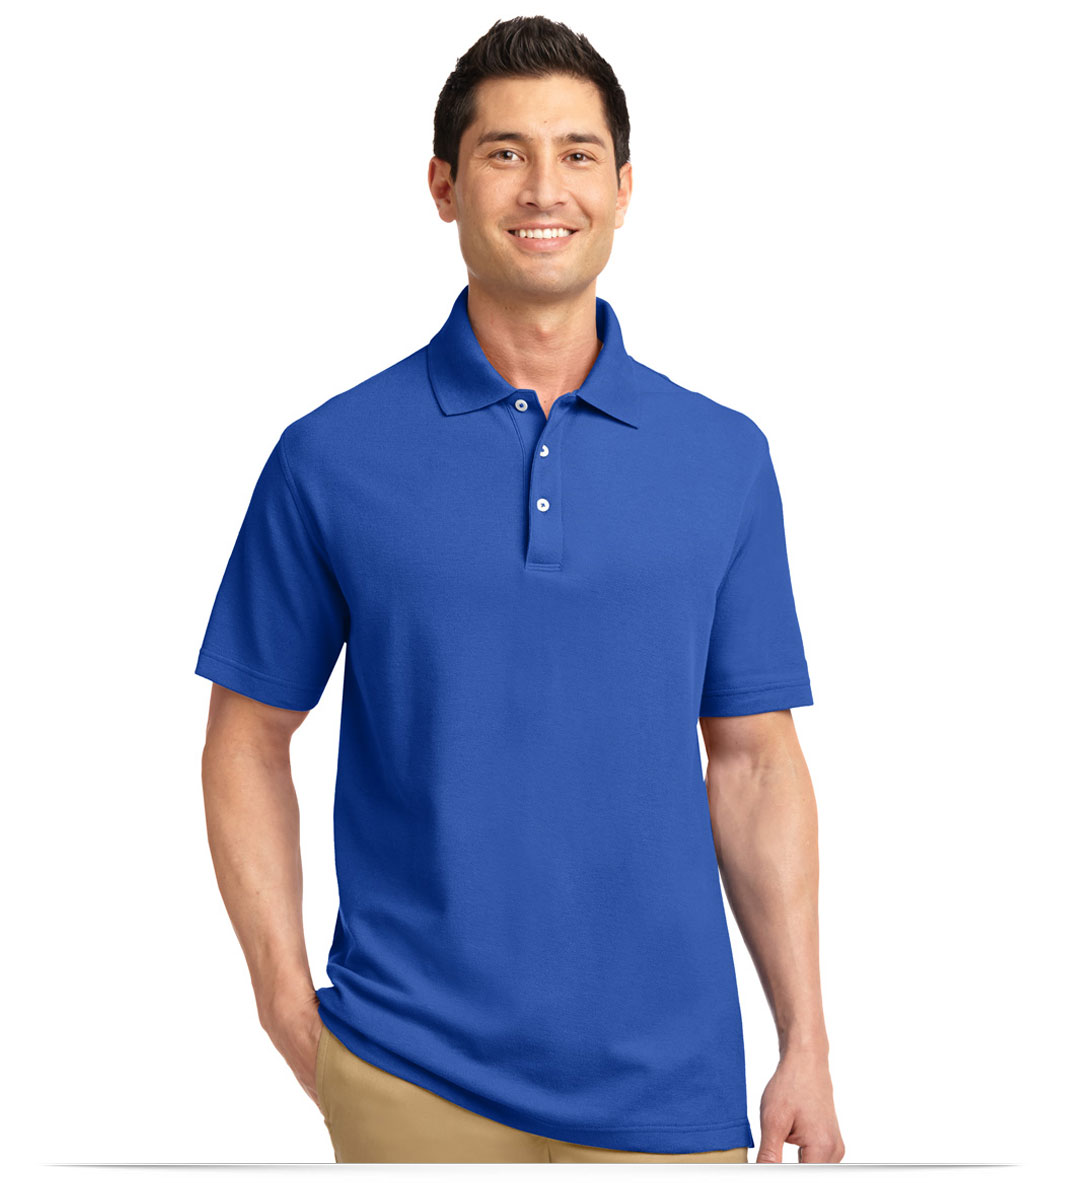 Personalized Business Polo Shirts Bcd Tofu House